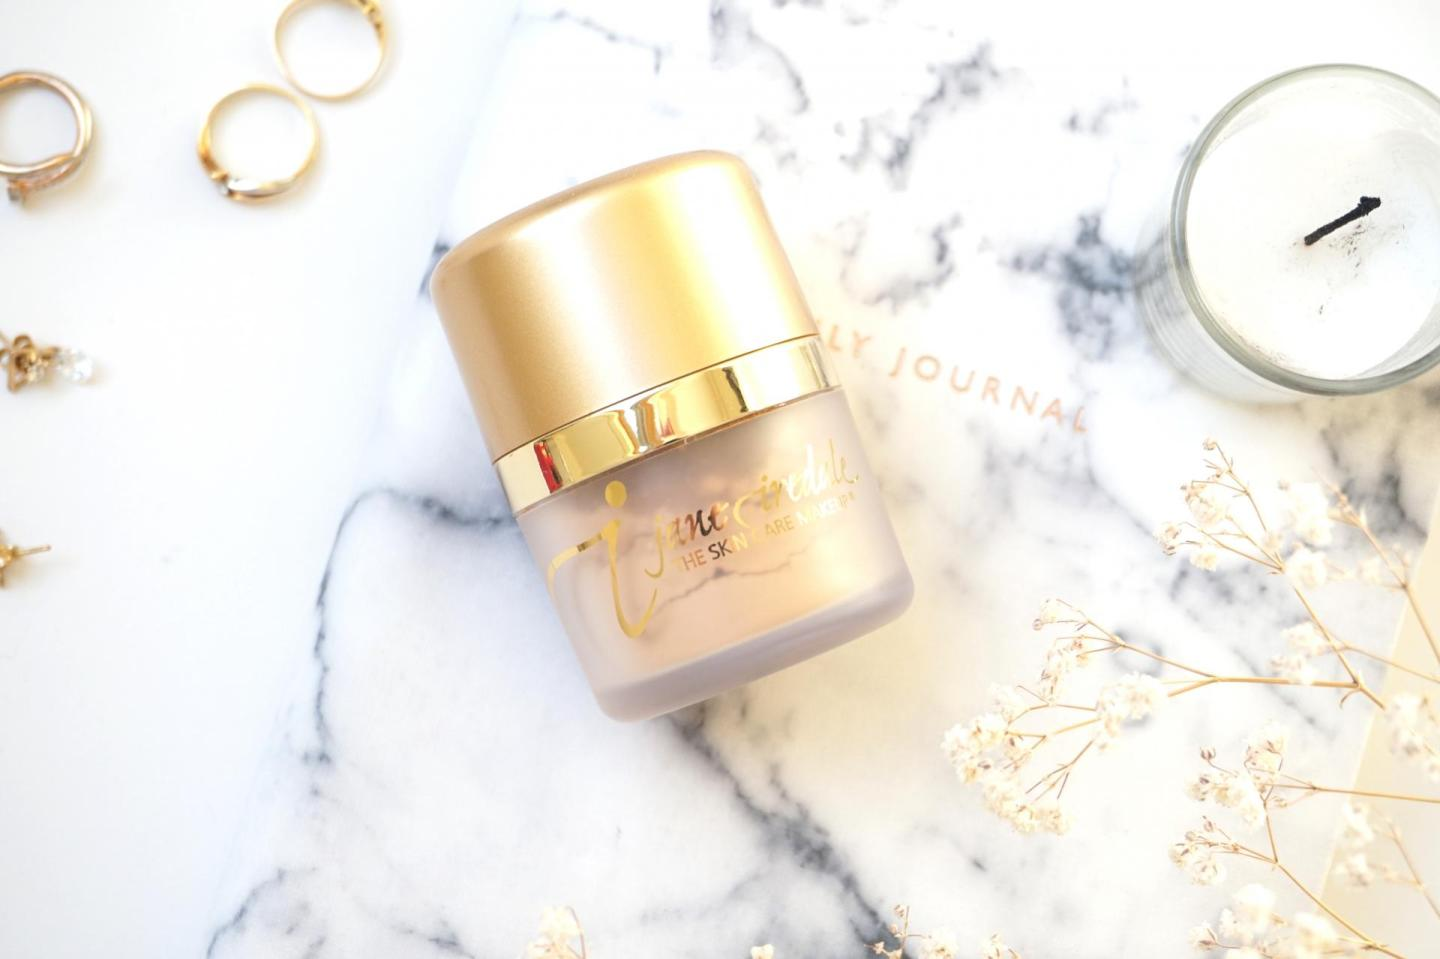 Jane Iredale: Powder-Me SPF